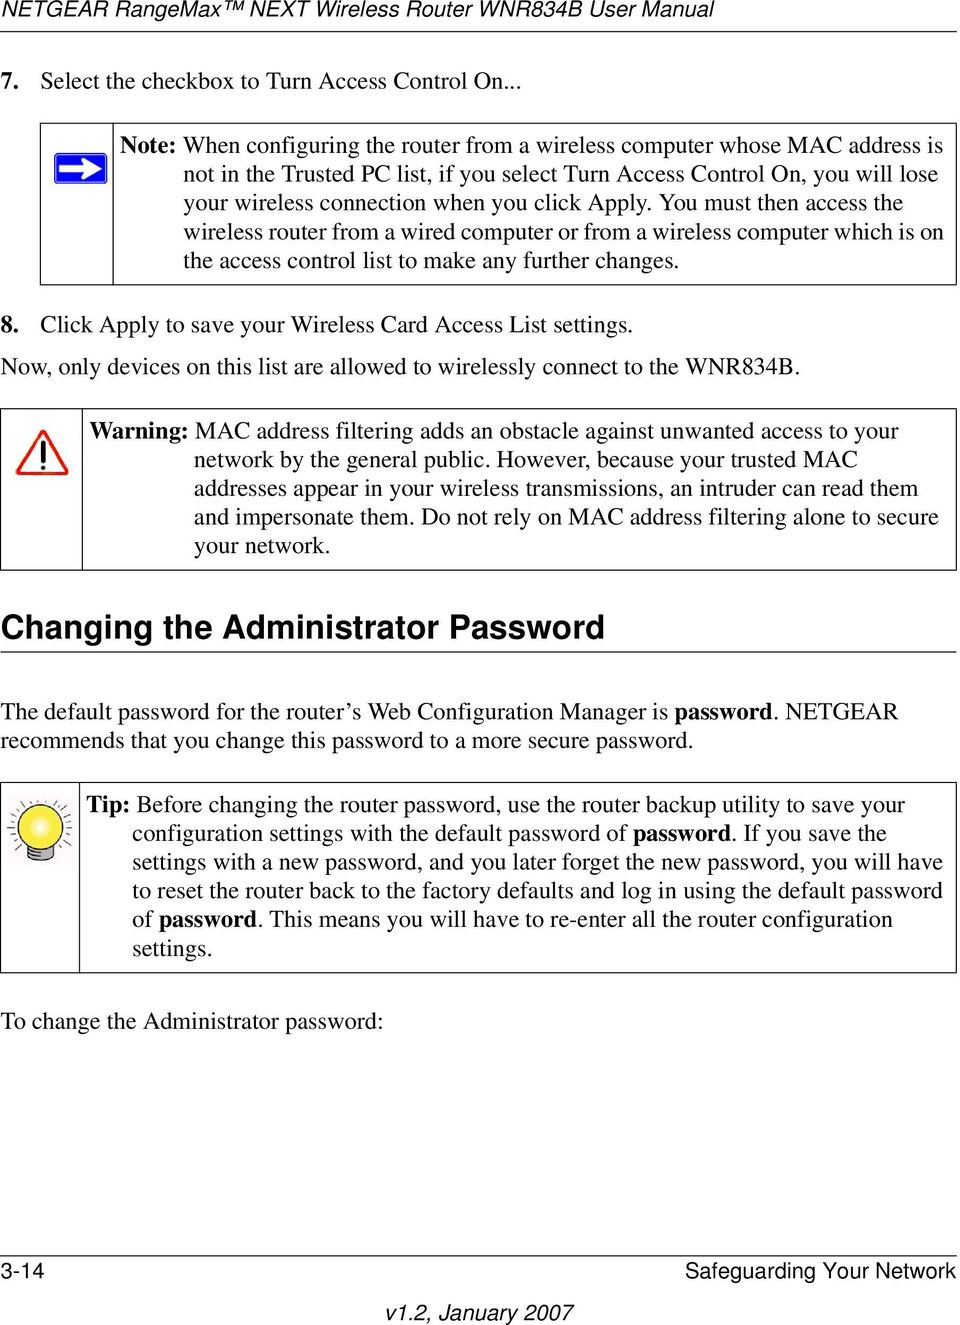 click Apply. You must then access the wireless router from a wired computer or from a wireless computer which is on the access control list to make any further changes. 8.